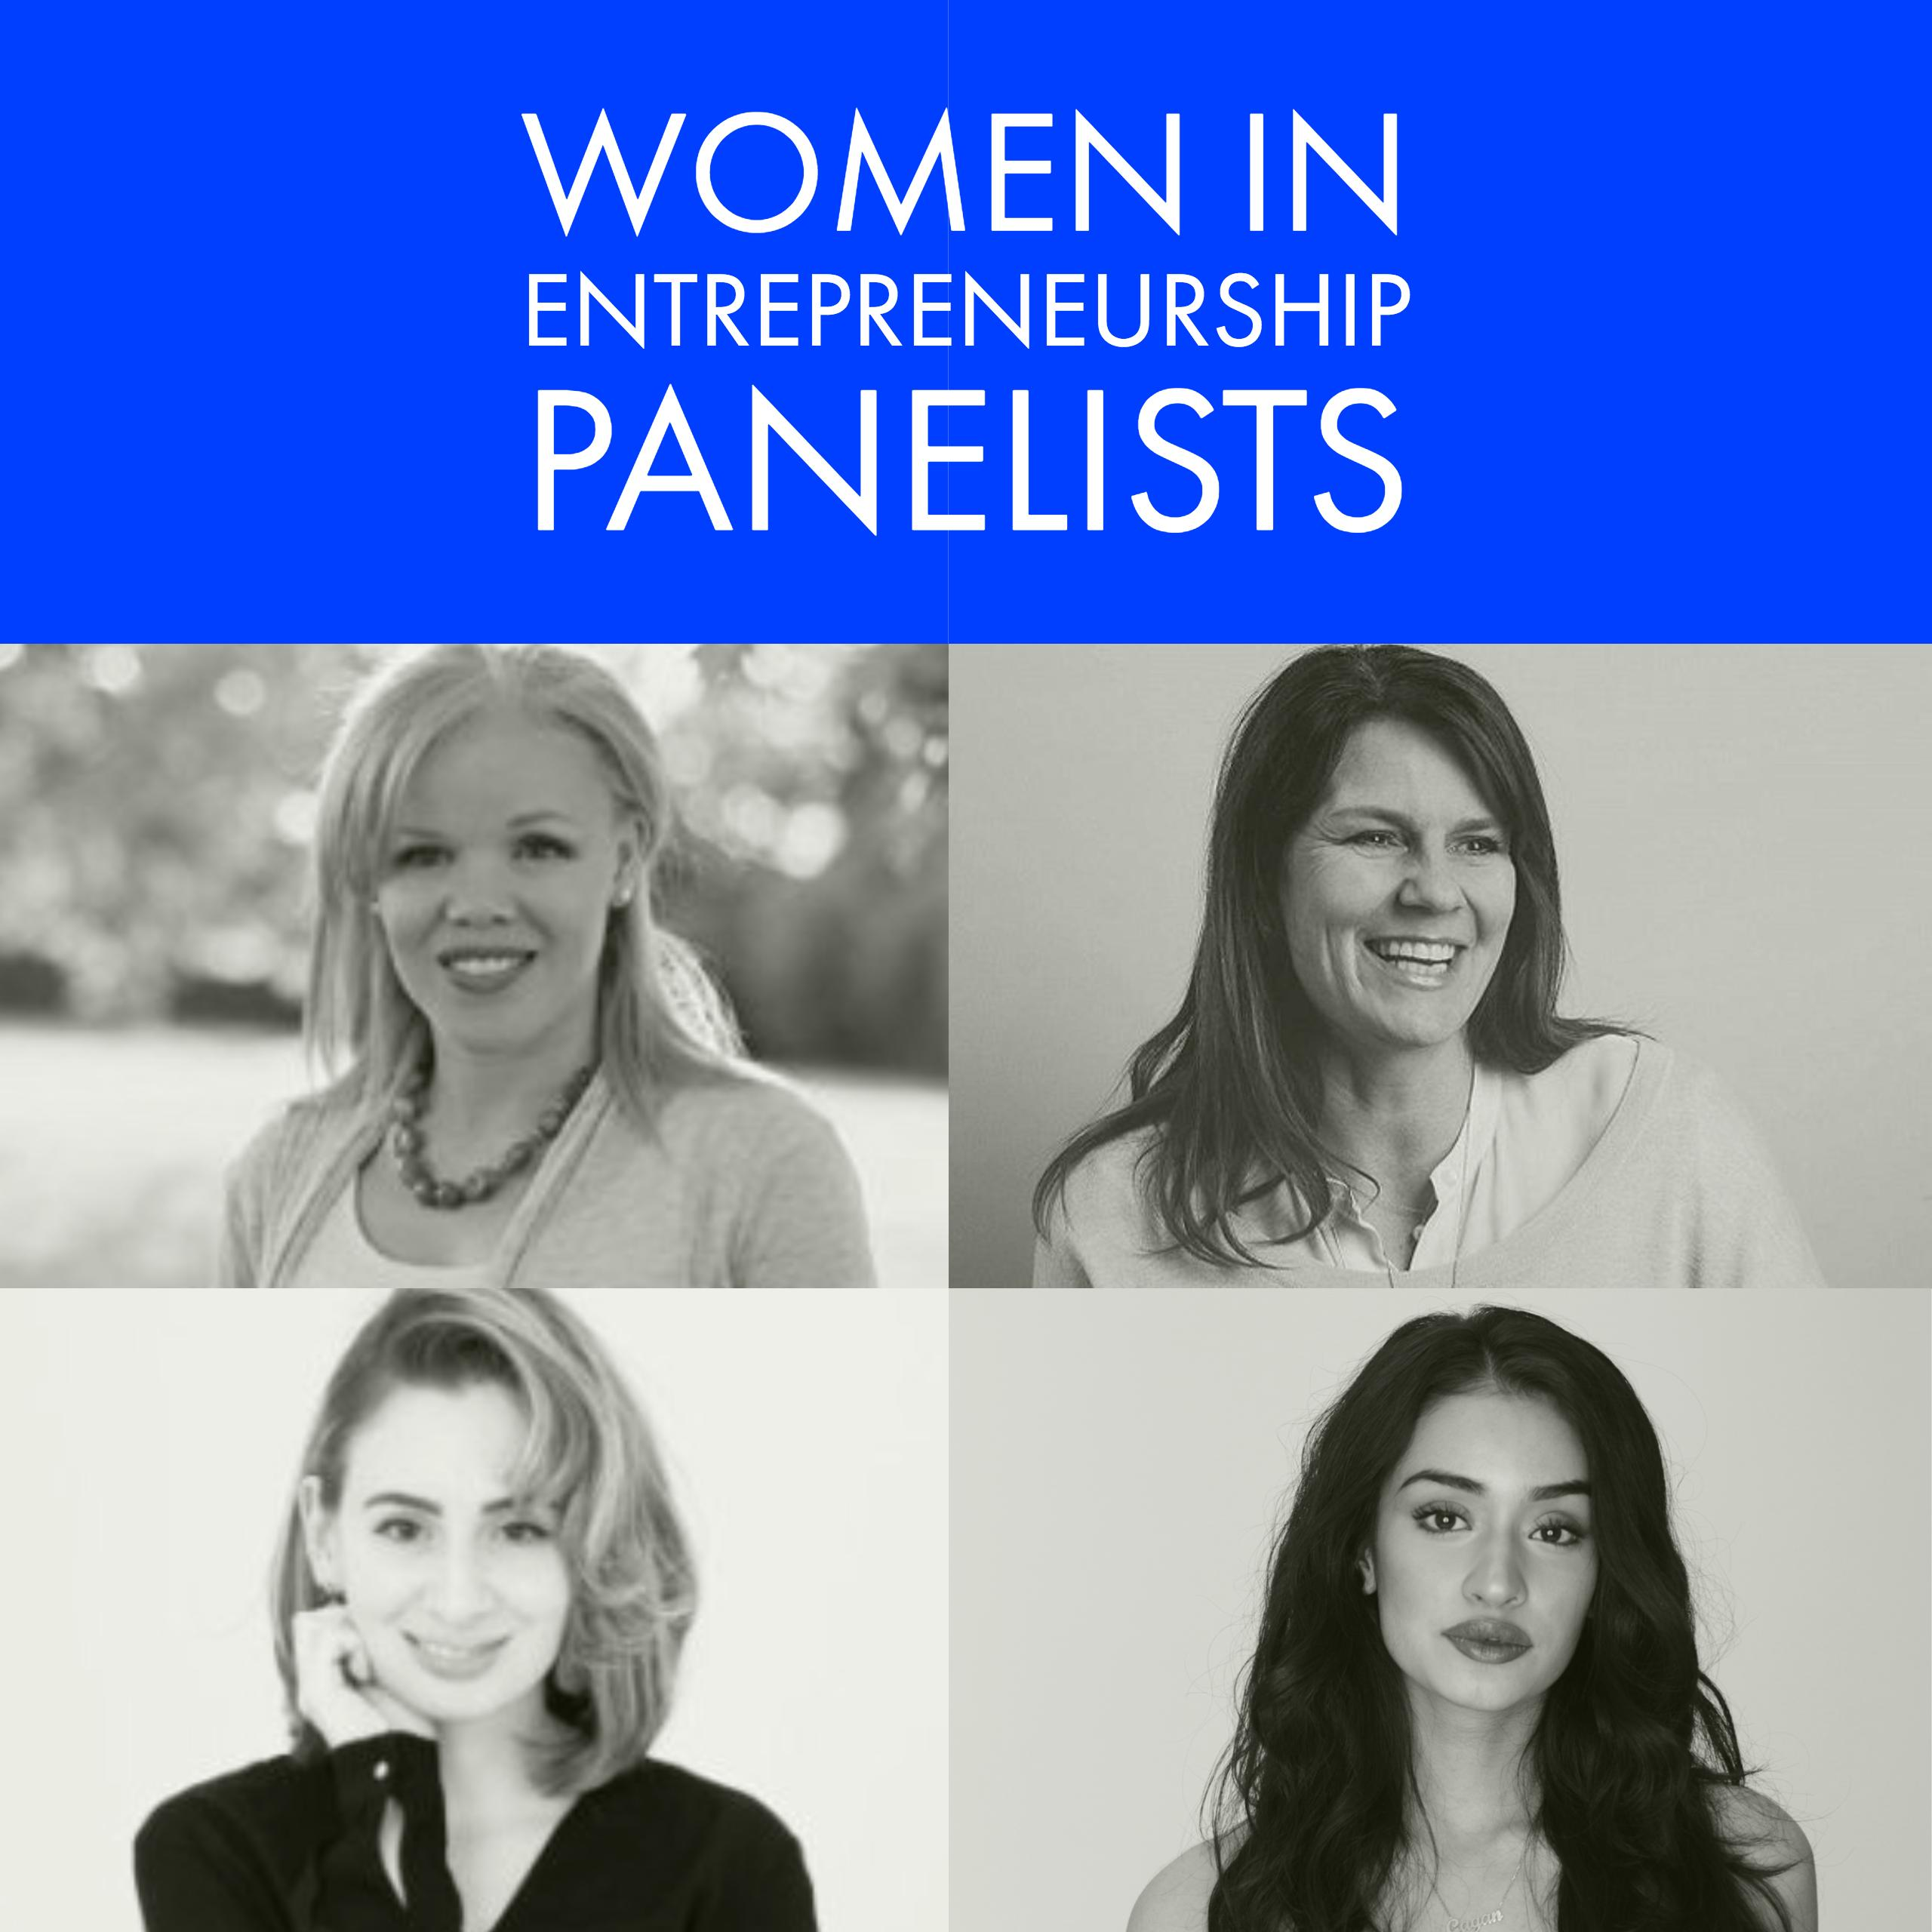 The panelists for Women in Entrepreneurship